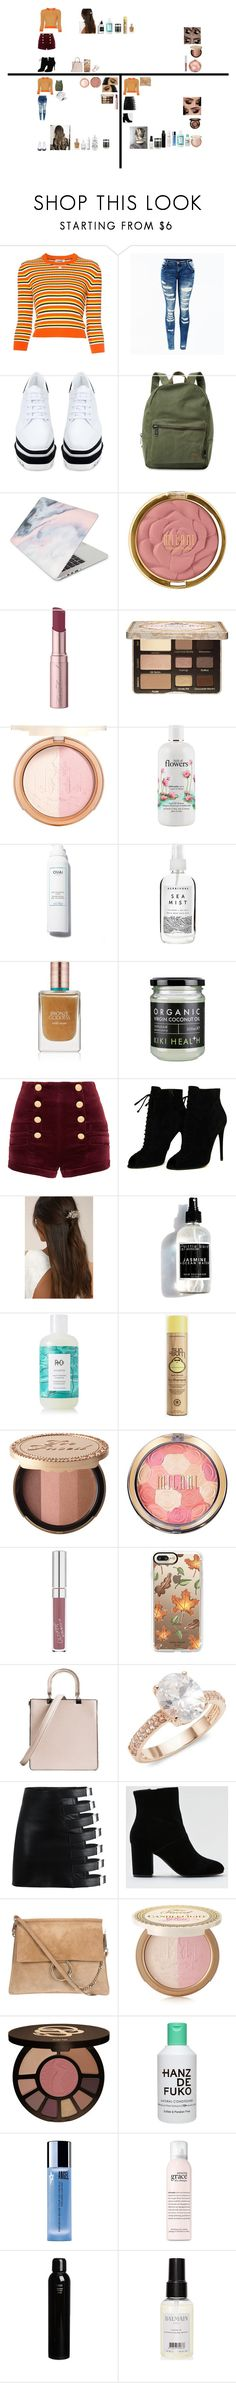 """""""Untitled #144"""" by bethdawson717 on Polyvore featuring Courrèges, STELLA McCARTNEY, Herschel Supply Co., Recover, Milani, Too Faced Cosmetics, philosophy, Herbivore, Estée Lauder and Pierre Balmain"""